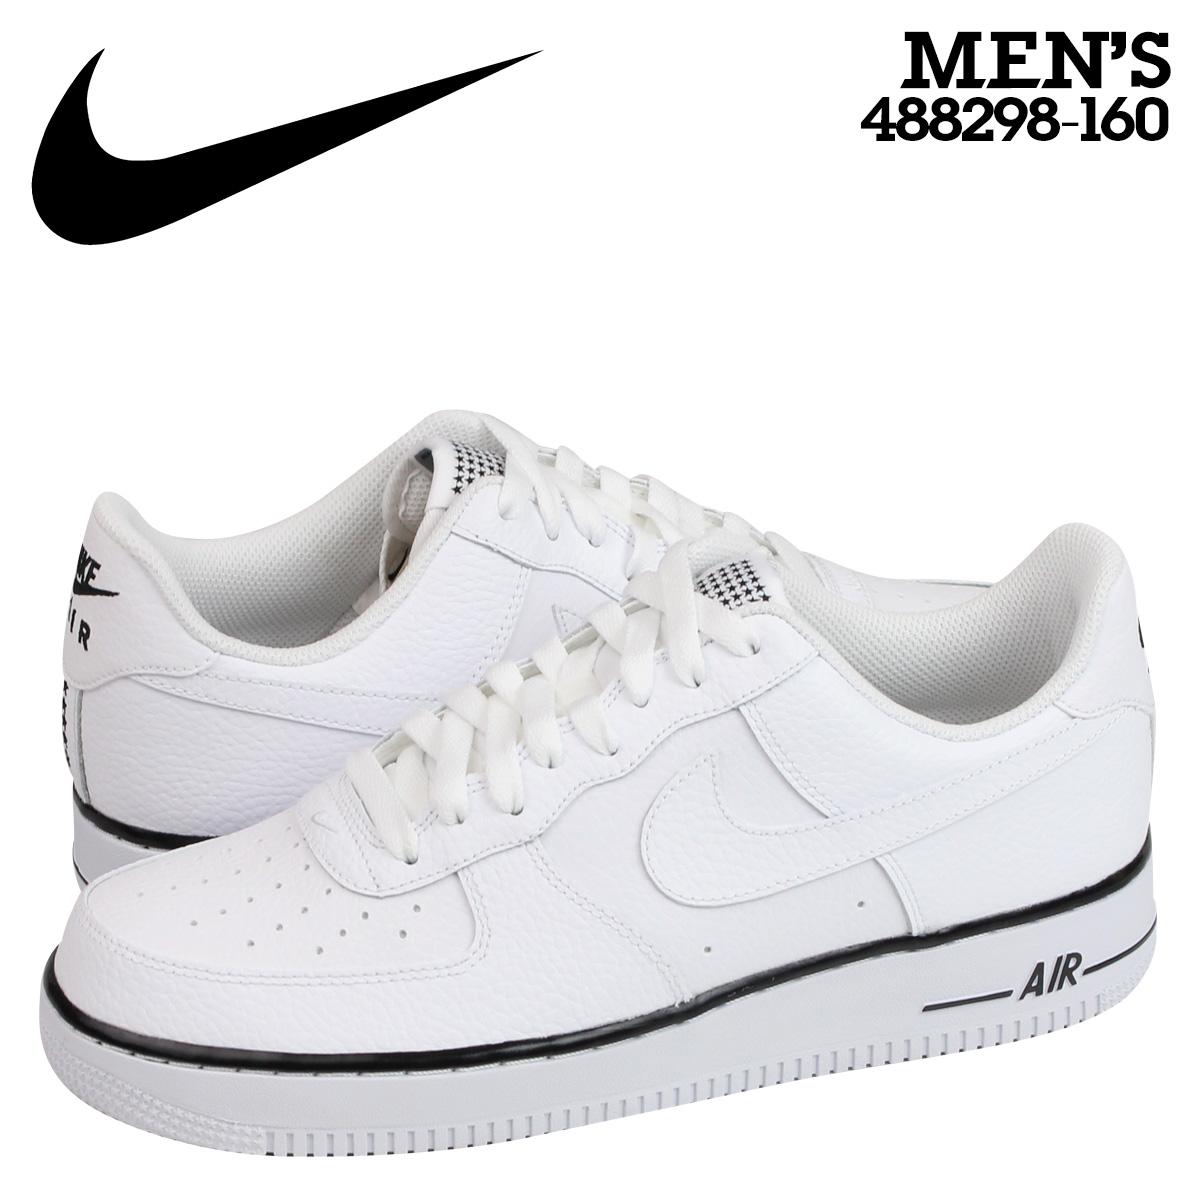 耐吉NIKE空軍運動鞋AIR FORCE 1 LOW空軍1低488298-160白人